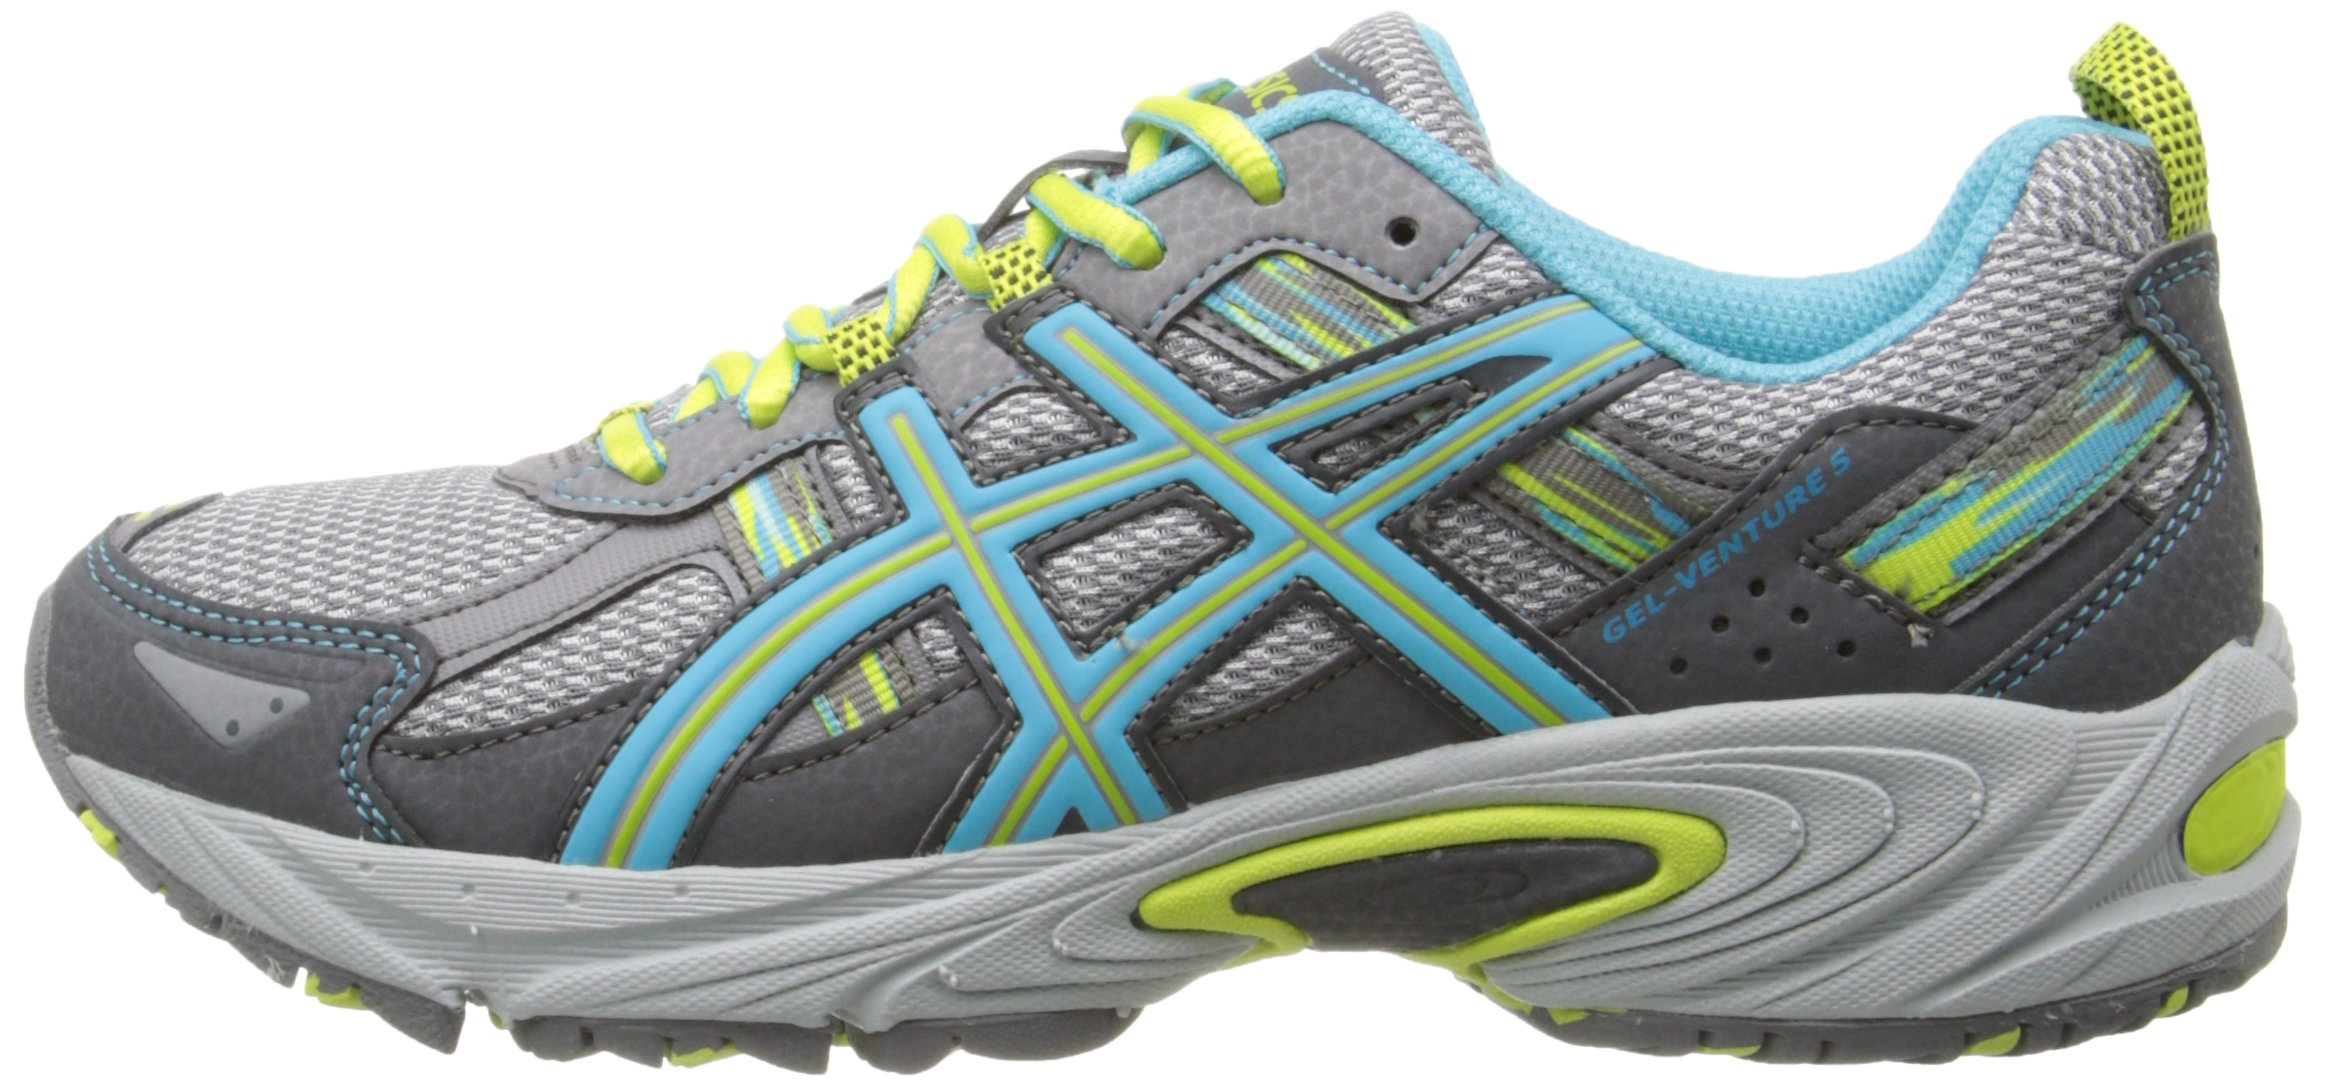 ASICS Women's Gel-Venture 5 Running Shoe, Silver Grey/Turquoise/Lime Punch, 6 M US by ASICS (Image #5)